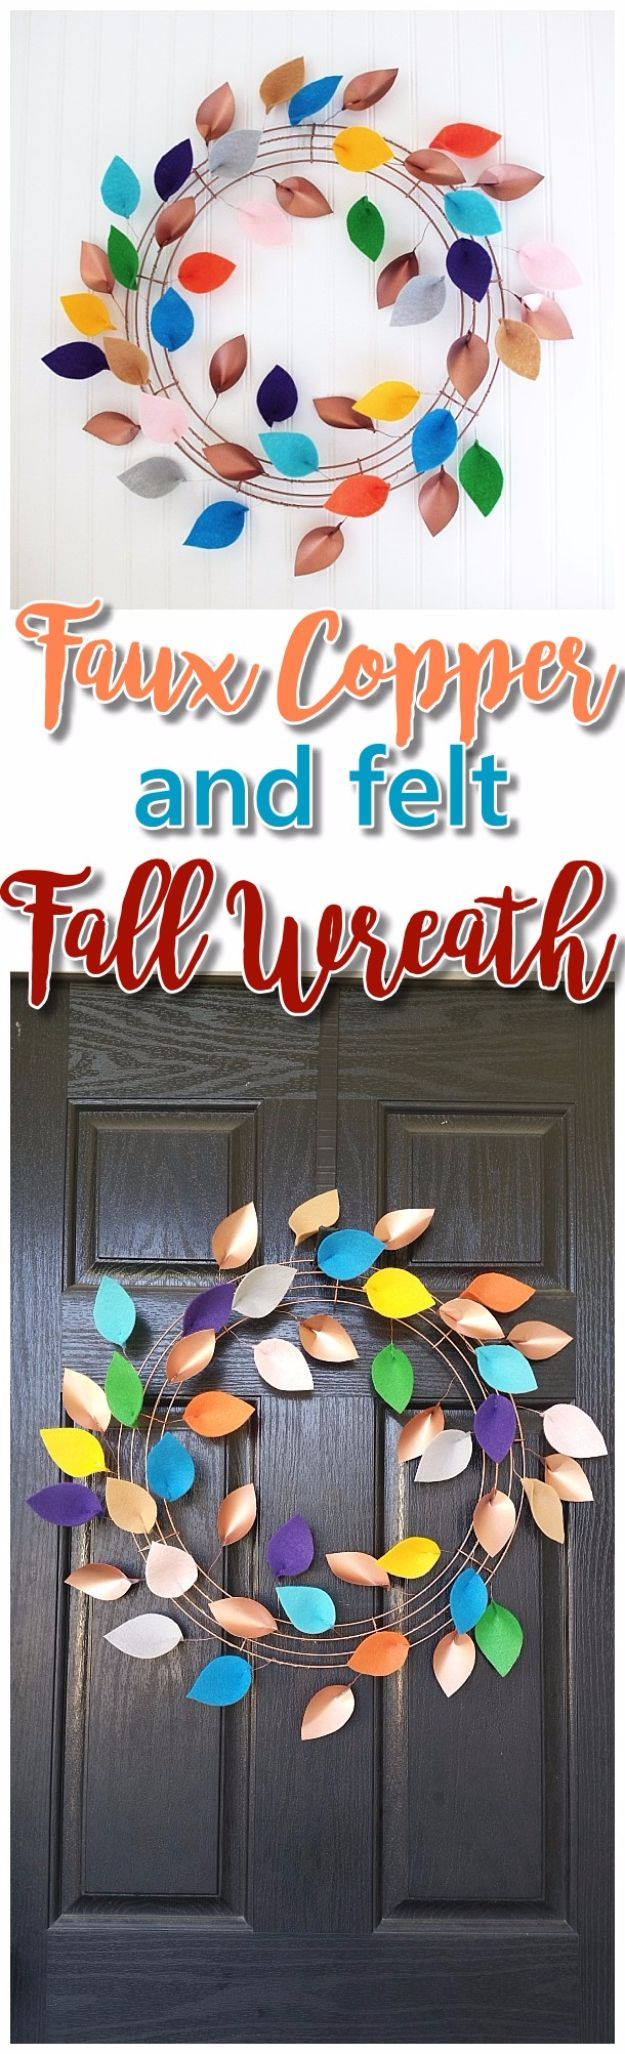 Best Crafts for Fall Decorating - DIY Faux Copper Paper and Felt Leaves Fall Wreath - DIY Home Decor, Mason Jar Ideas, Dollar Store Crafts, Rustic Pumpkin Ideas, Wreaths, Candles and Wall Art, Centerpieces, Wedding Decorations, Homemade Gifts, Craft Projects with Leaves, Flowers and Burlap, Painted Art, Candles and Luminaries for Cool Home Decor - Quick and Easy Projects With Step by Step Tutorials and Instructions